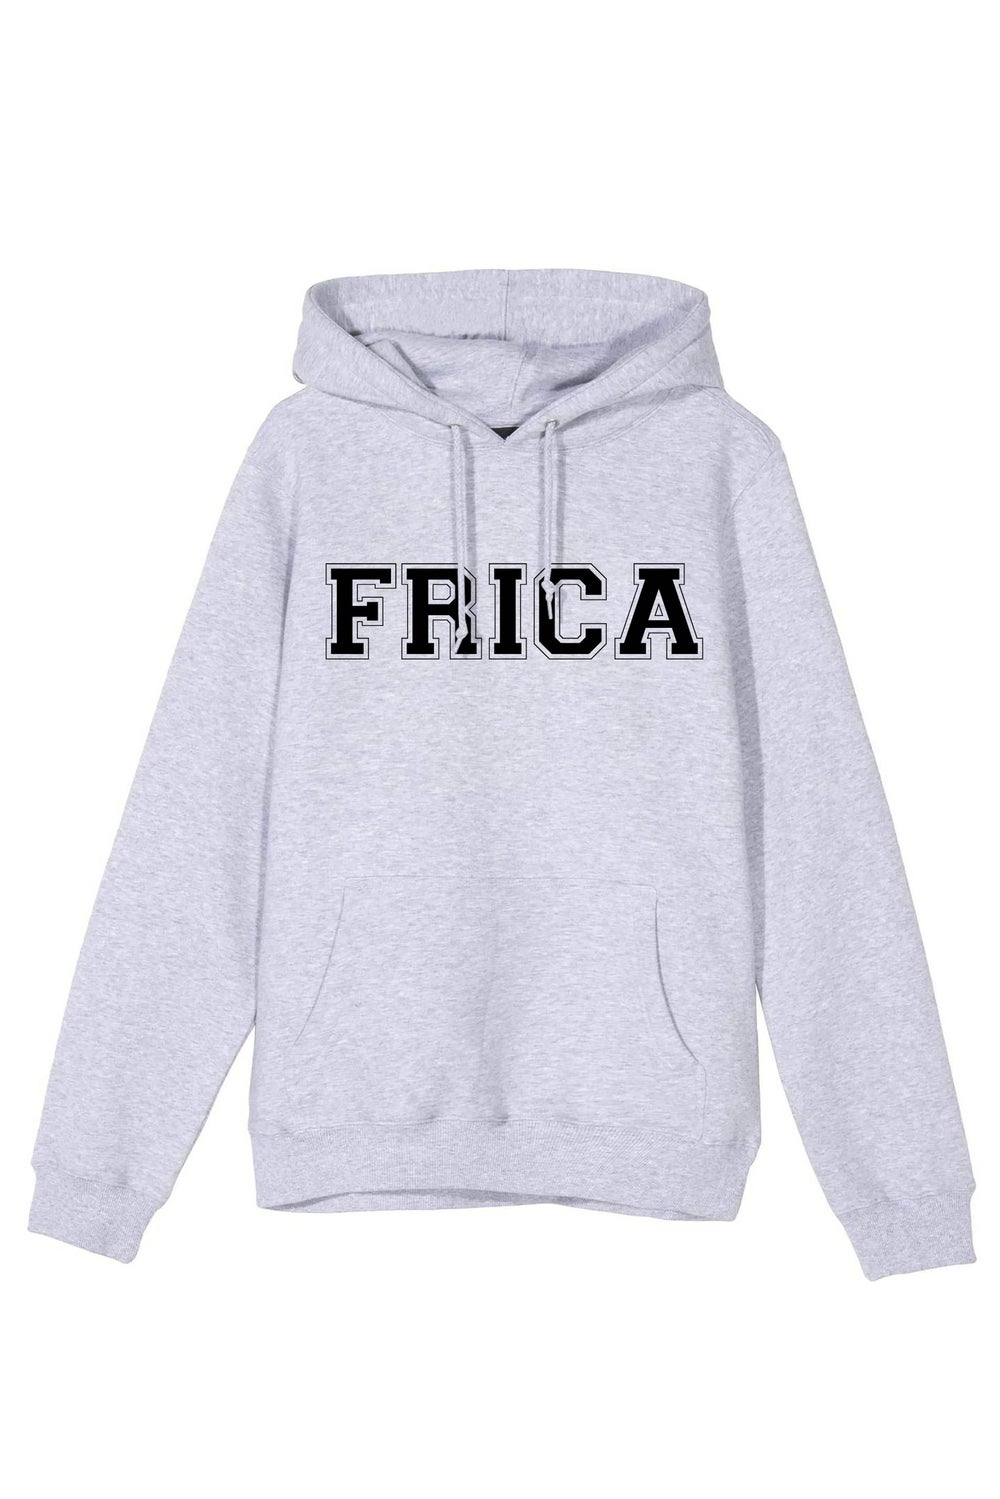 Image of College Ed. Frica Hoodie